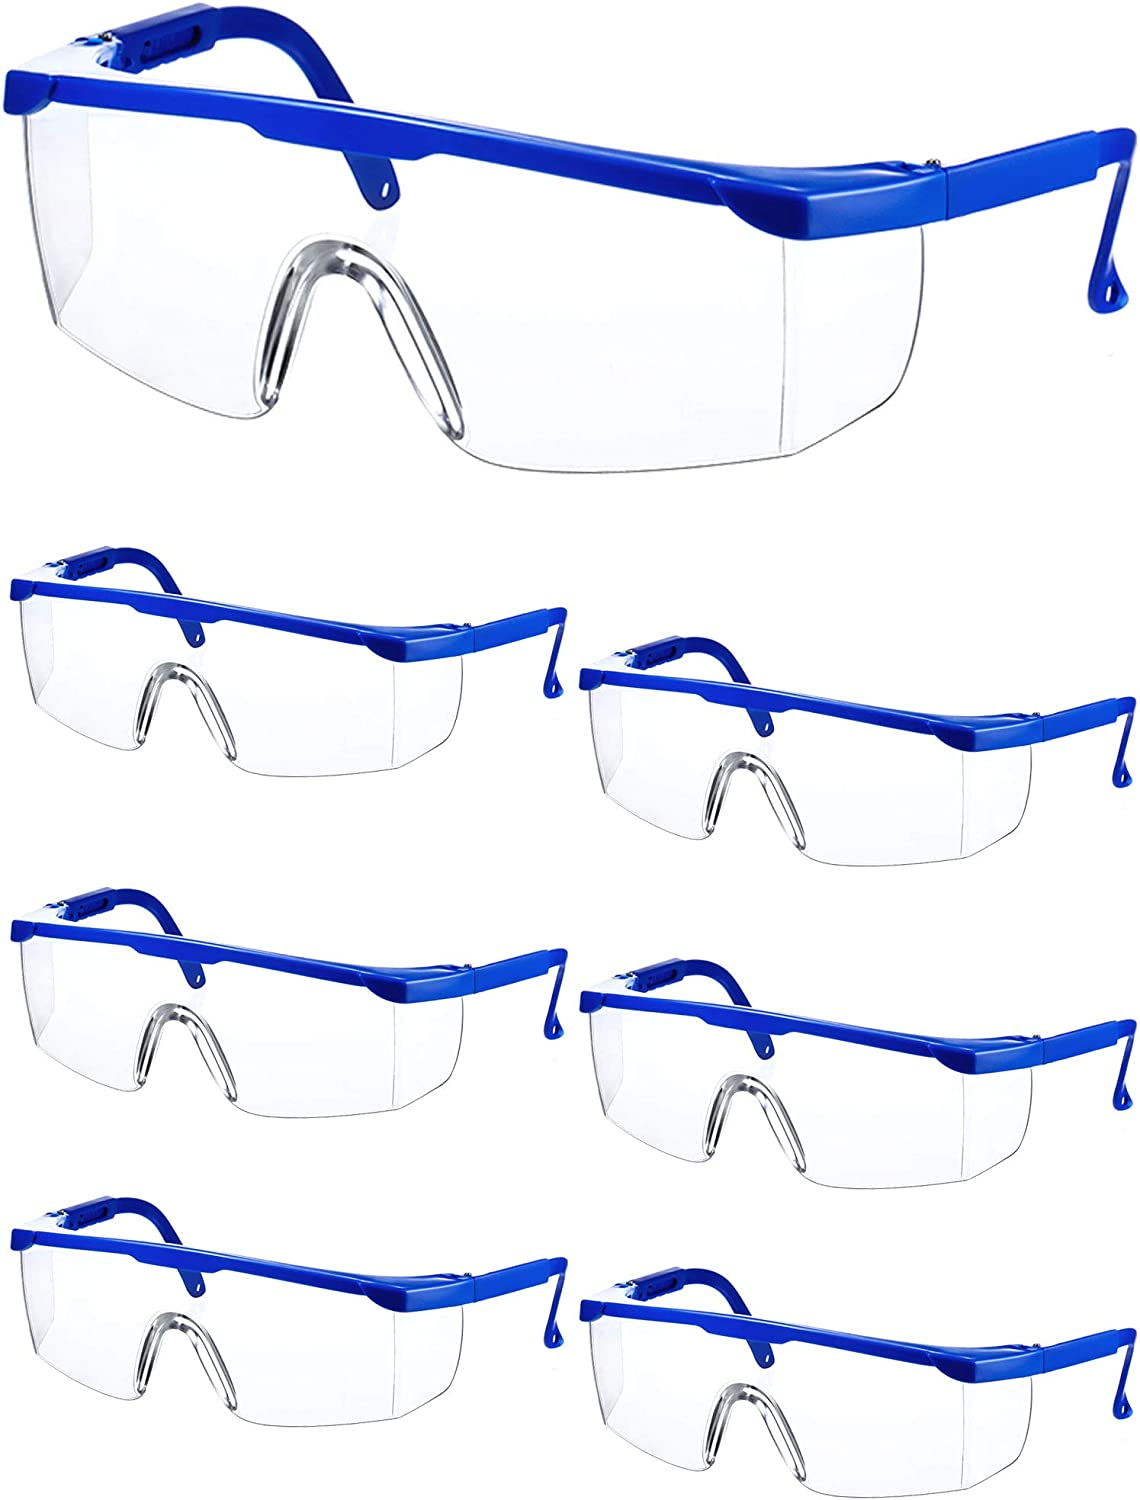 Blue Workplace Safety Goggles Protective Goggles Eyewear Clear Glasses Splash Windproof Dustproof Goggles Wrap-Around Lenses and No-Slip Grips Protection for Workplace Industrial Class 6